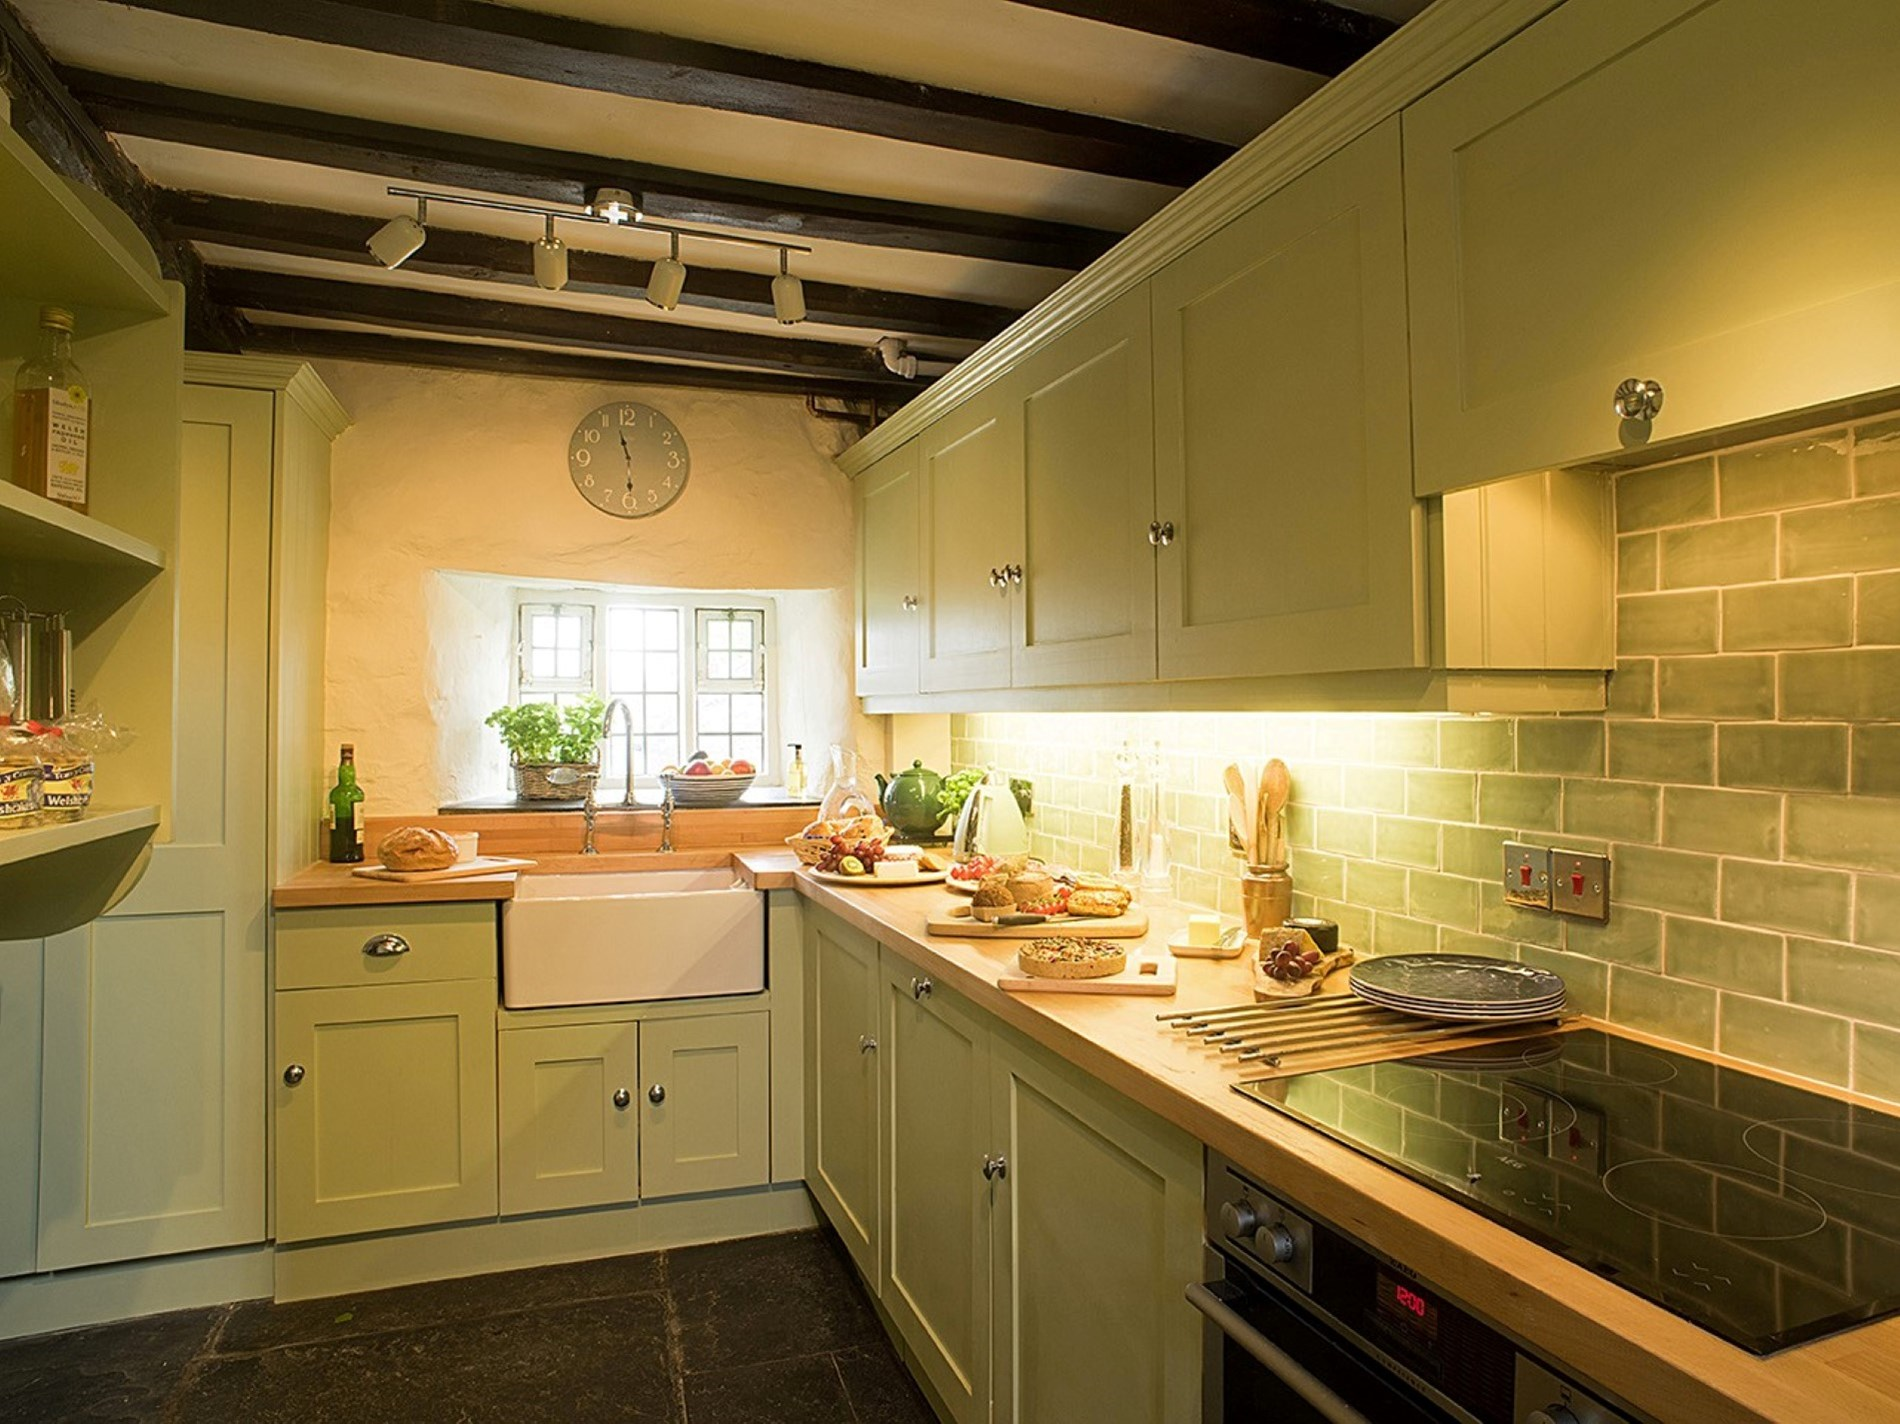 5 Bedroom Cottage in Betws -y- Coed, Snowdonia, North Wales and Cheshire